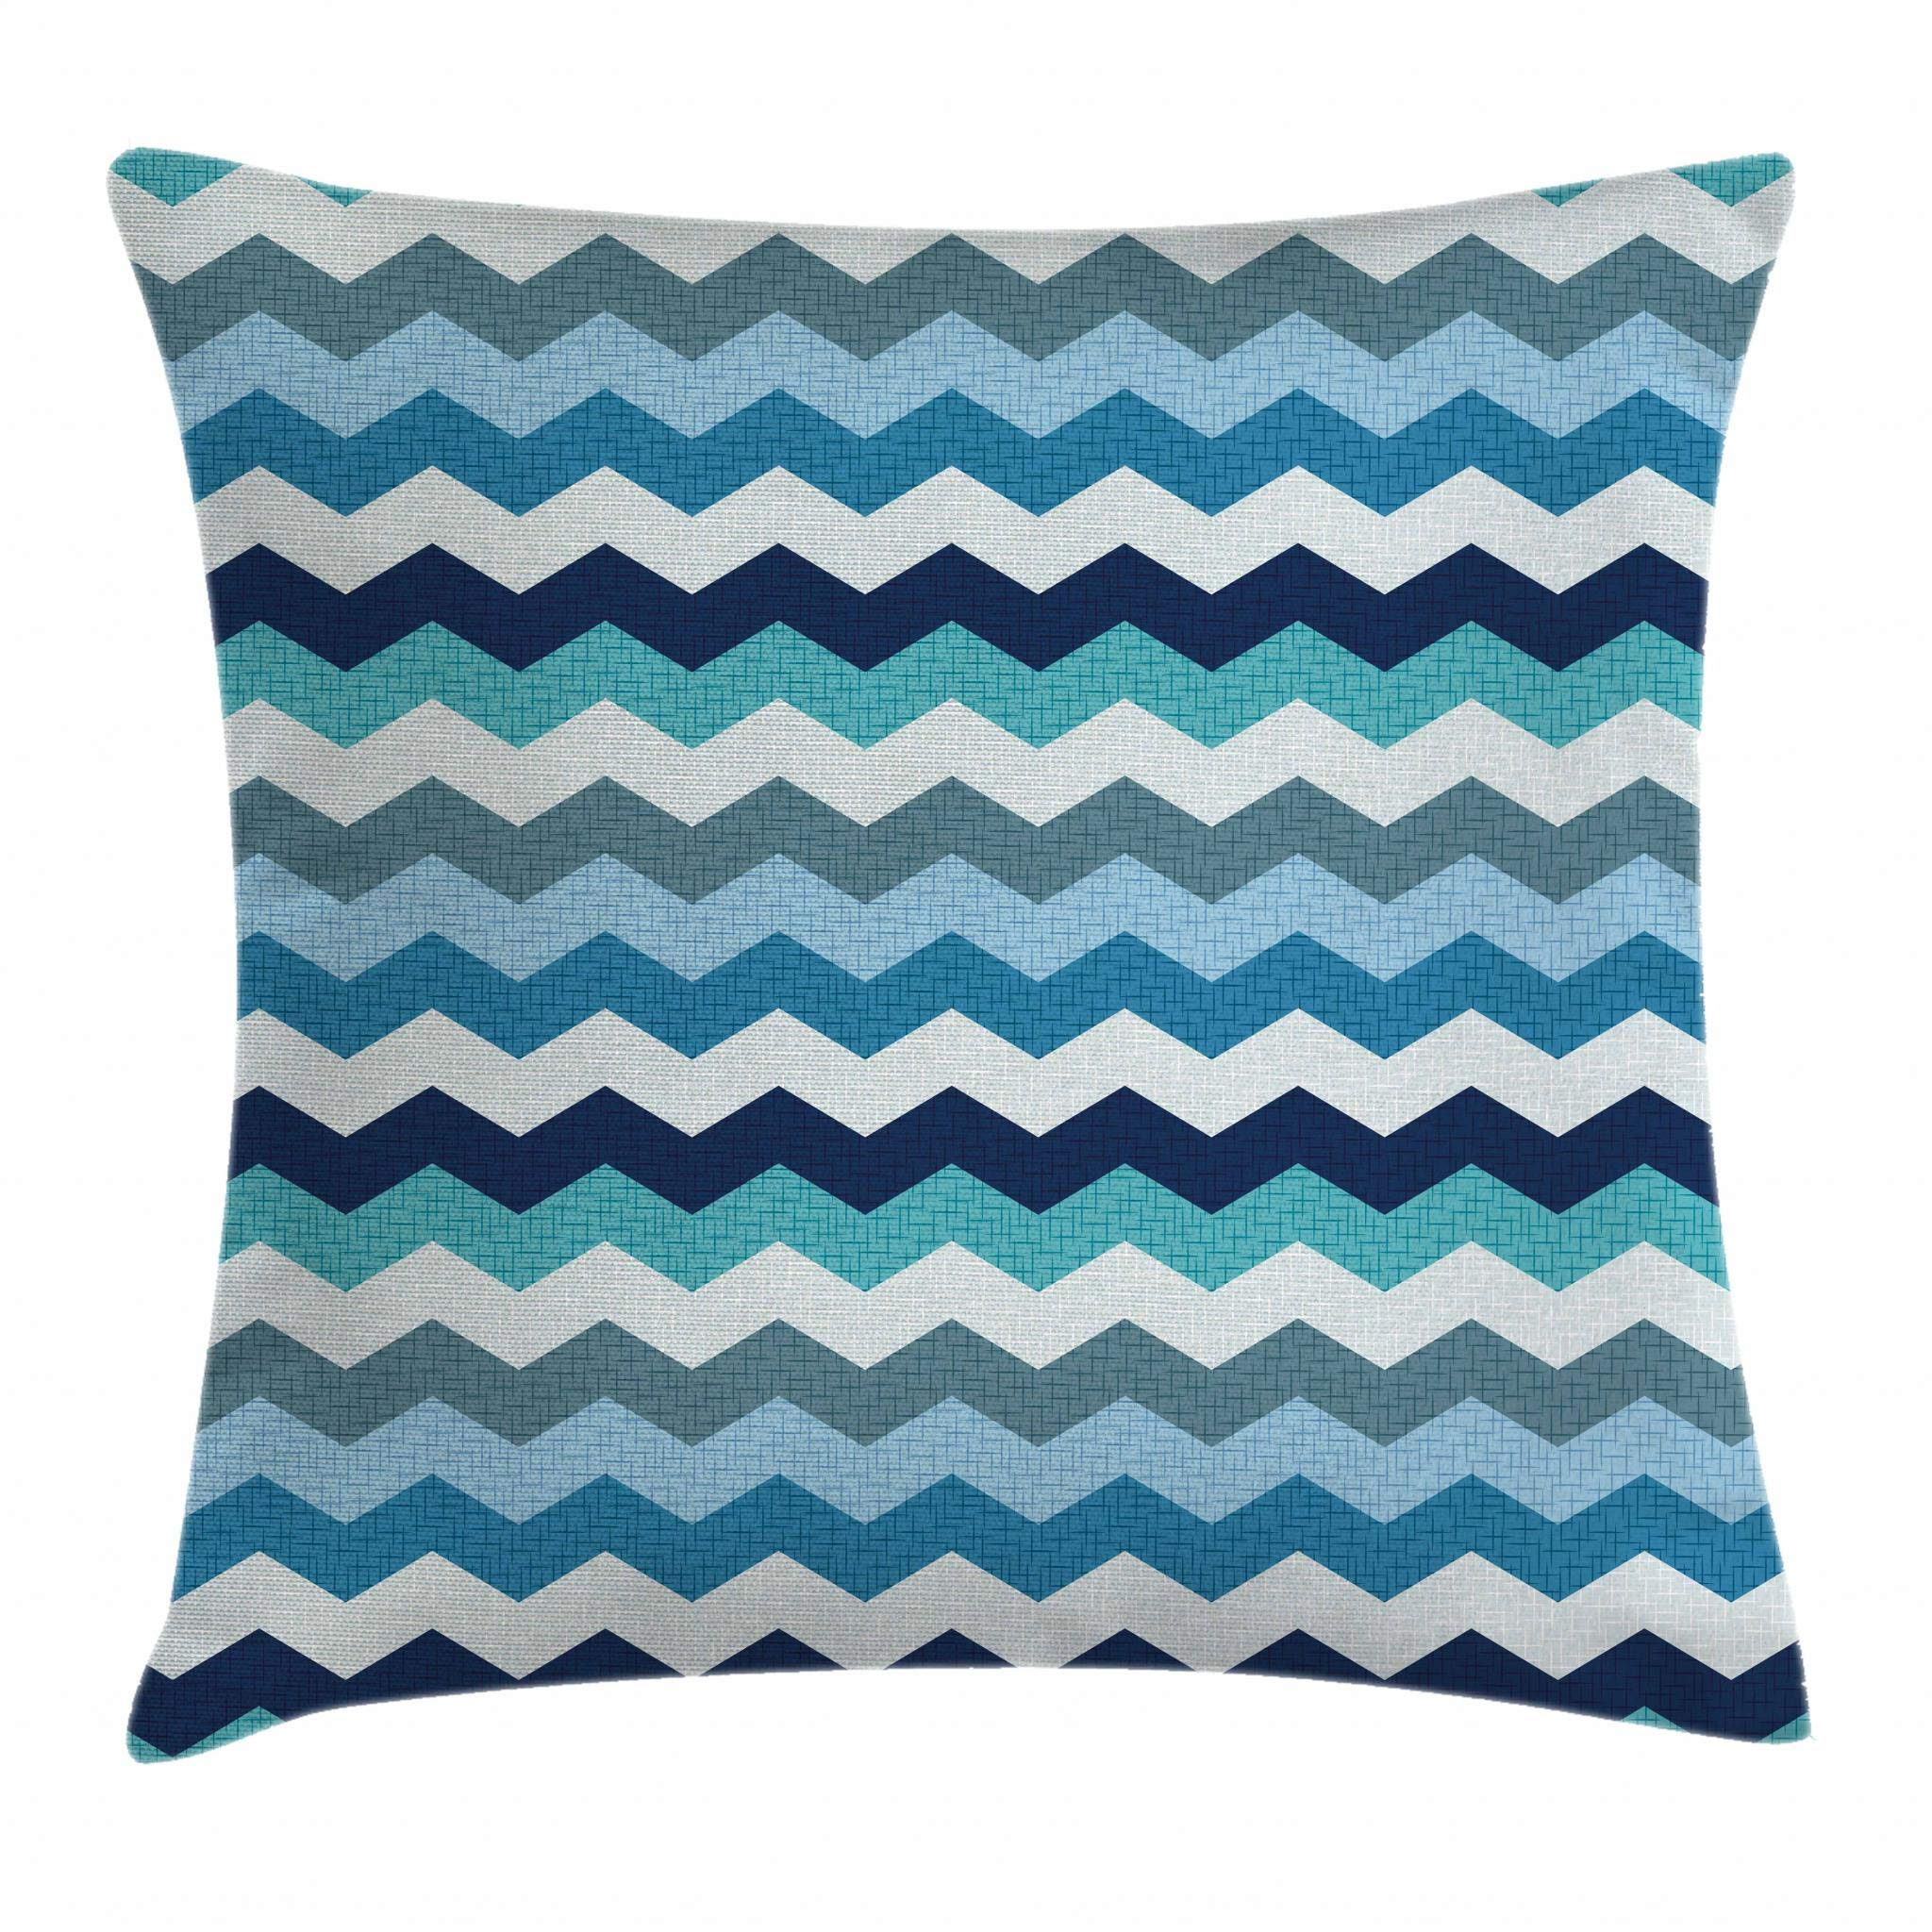 Ambesonne Aqua Throw Pillow Cushion Cover, Retro Vintage Chevron Geometrical Zig Zag Stripes, Decorative Square Accent Pillow Case, 26 X 26 Inches, Turquoise Pale Blue Navy Blue and Seafoam